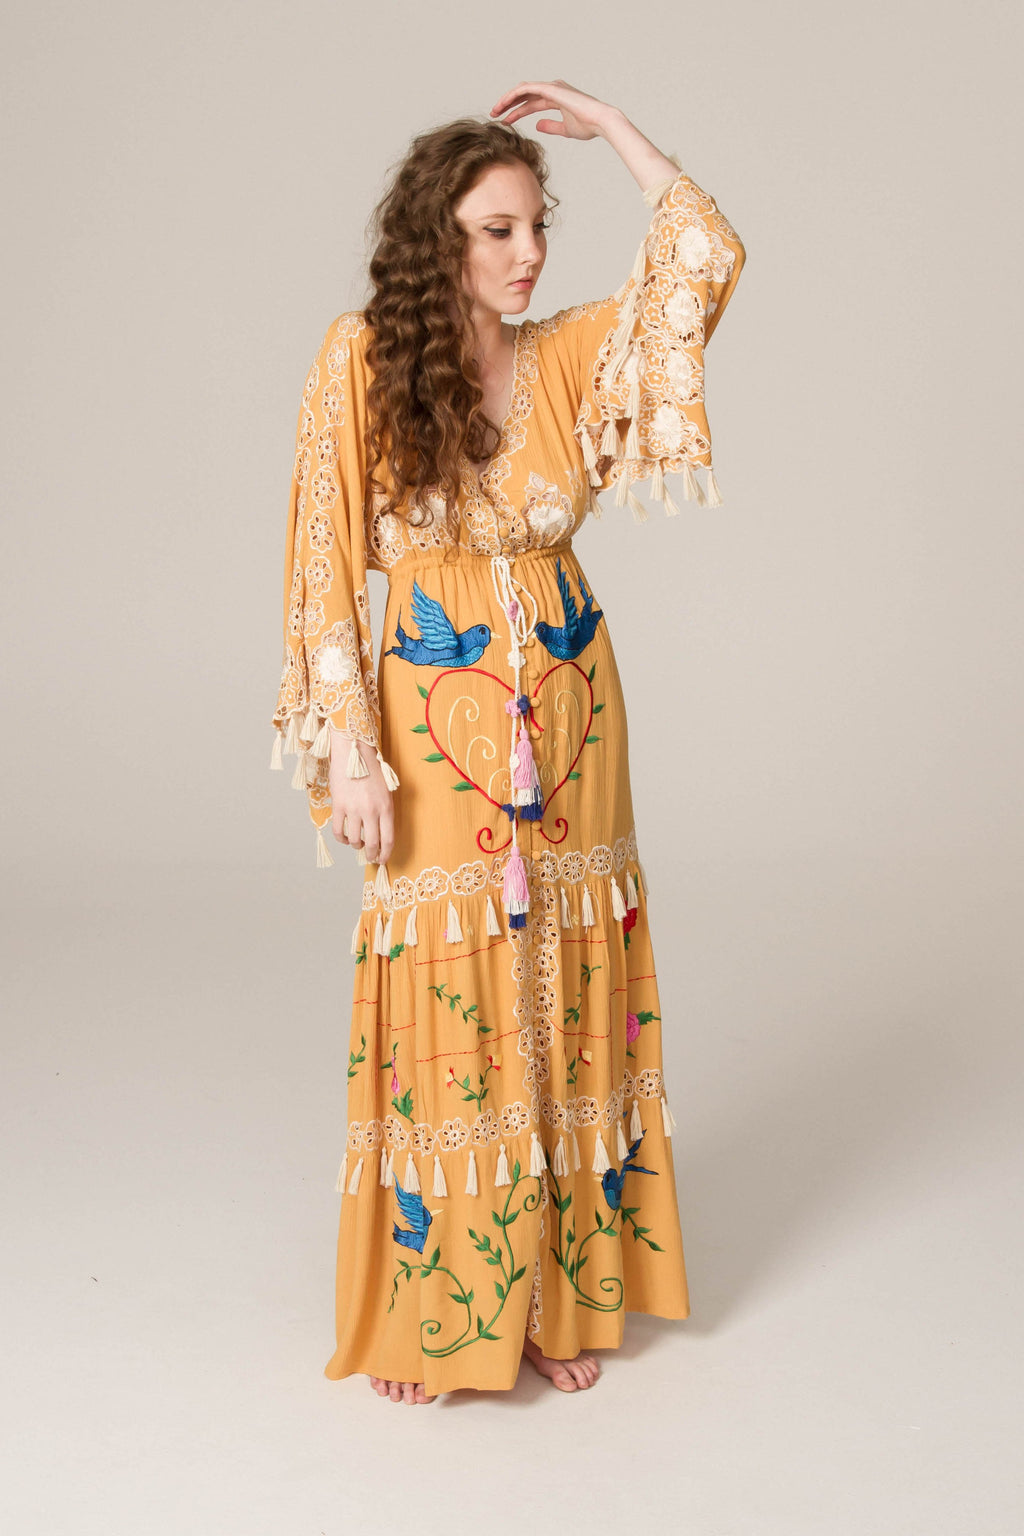 'HEART ON THE FLOOR' - HAND EMBROIDERED DUSTER - GOLD WITH MULTI